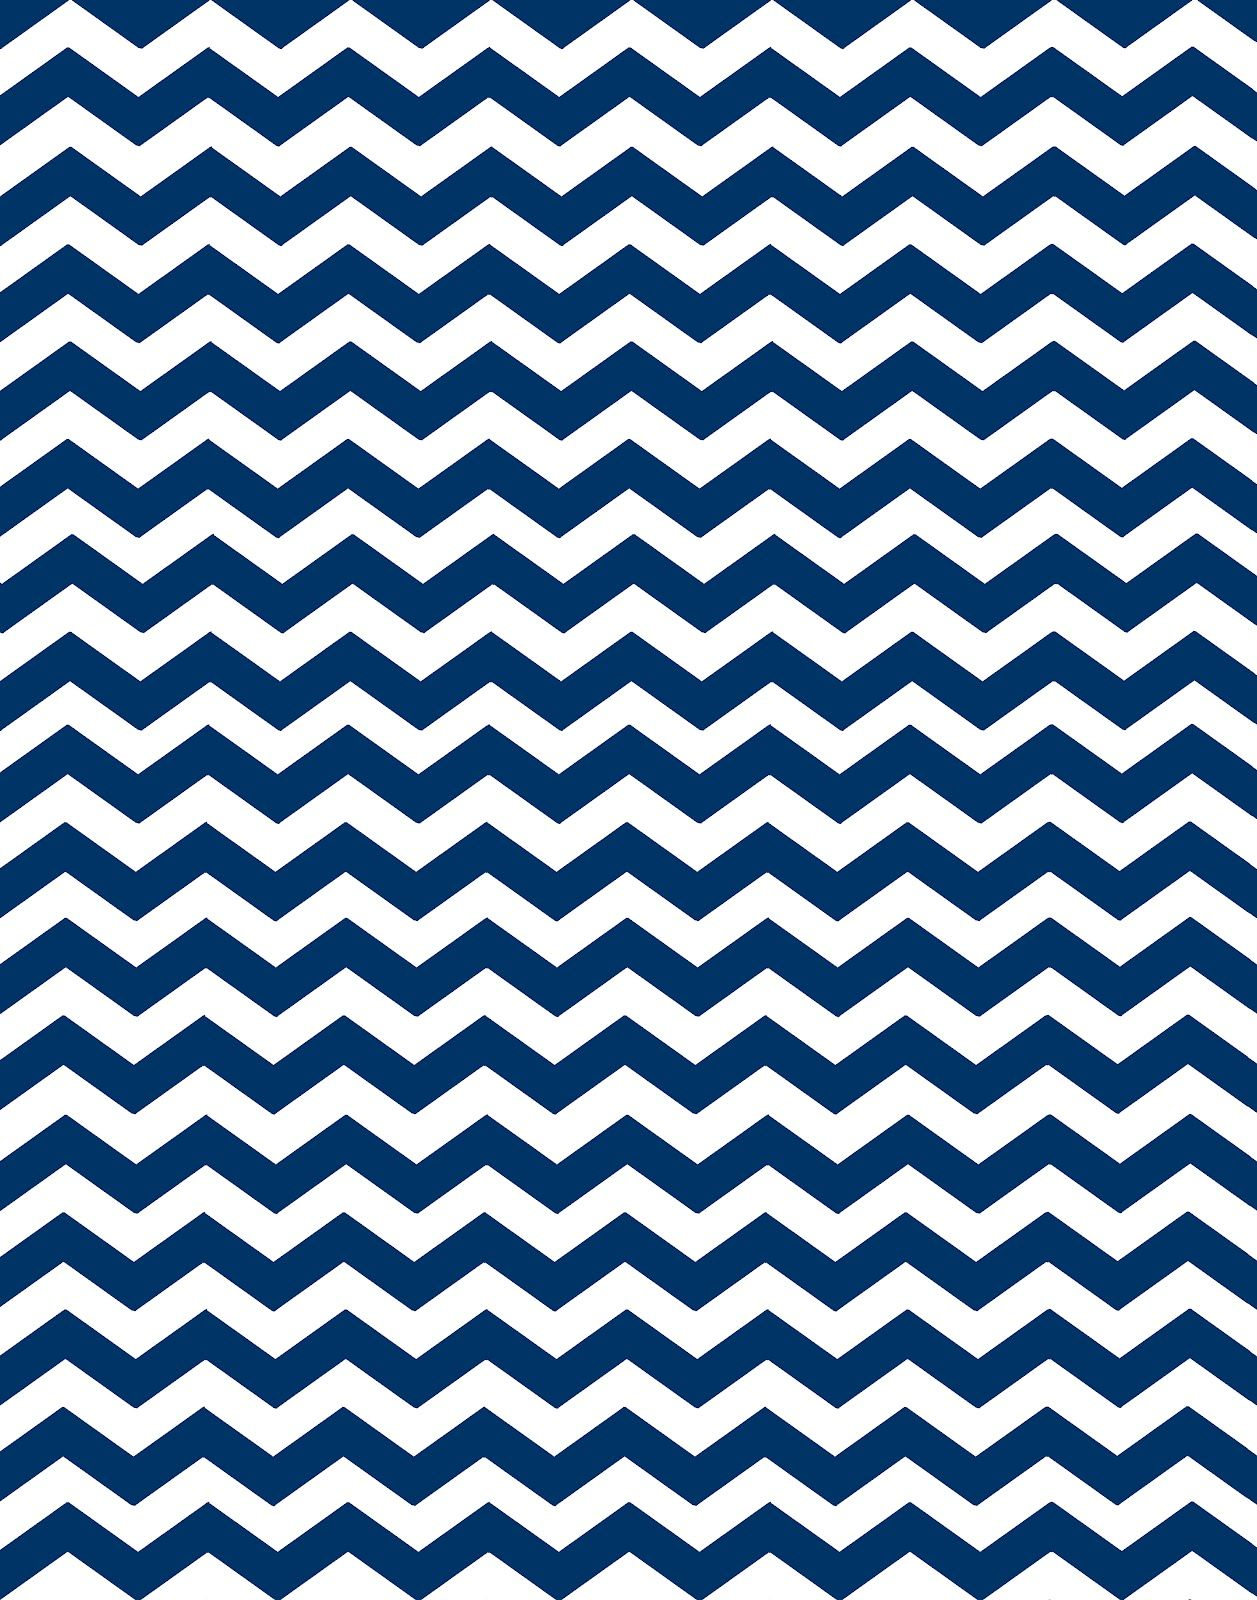 16 New Colors Chevron background patterns! Background